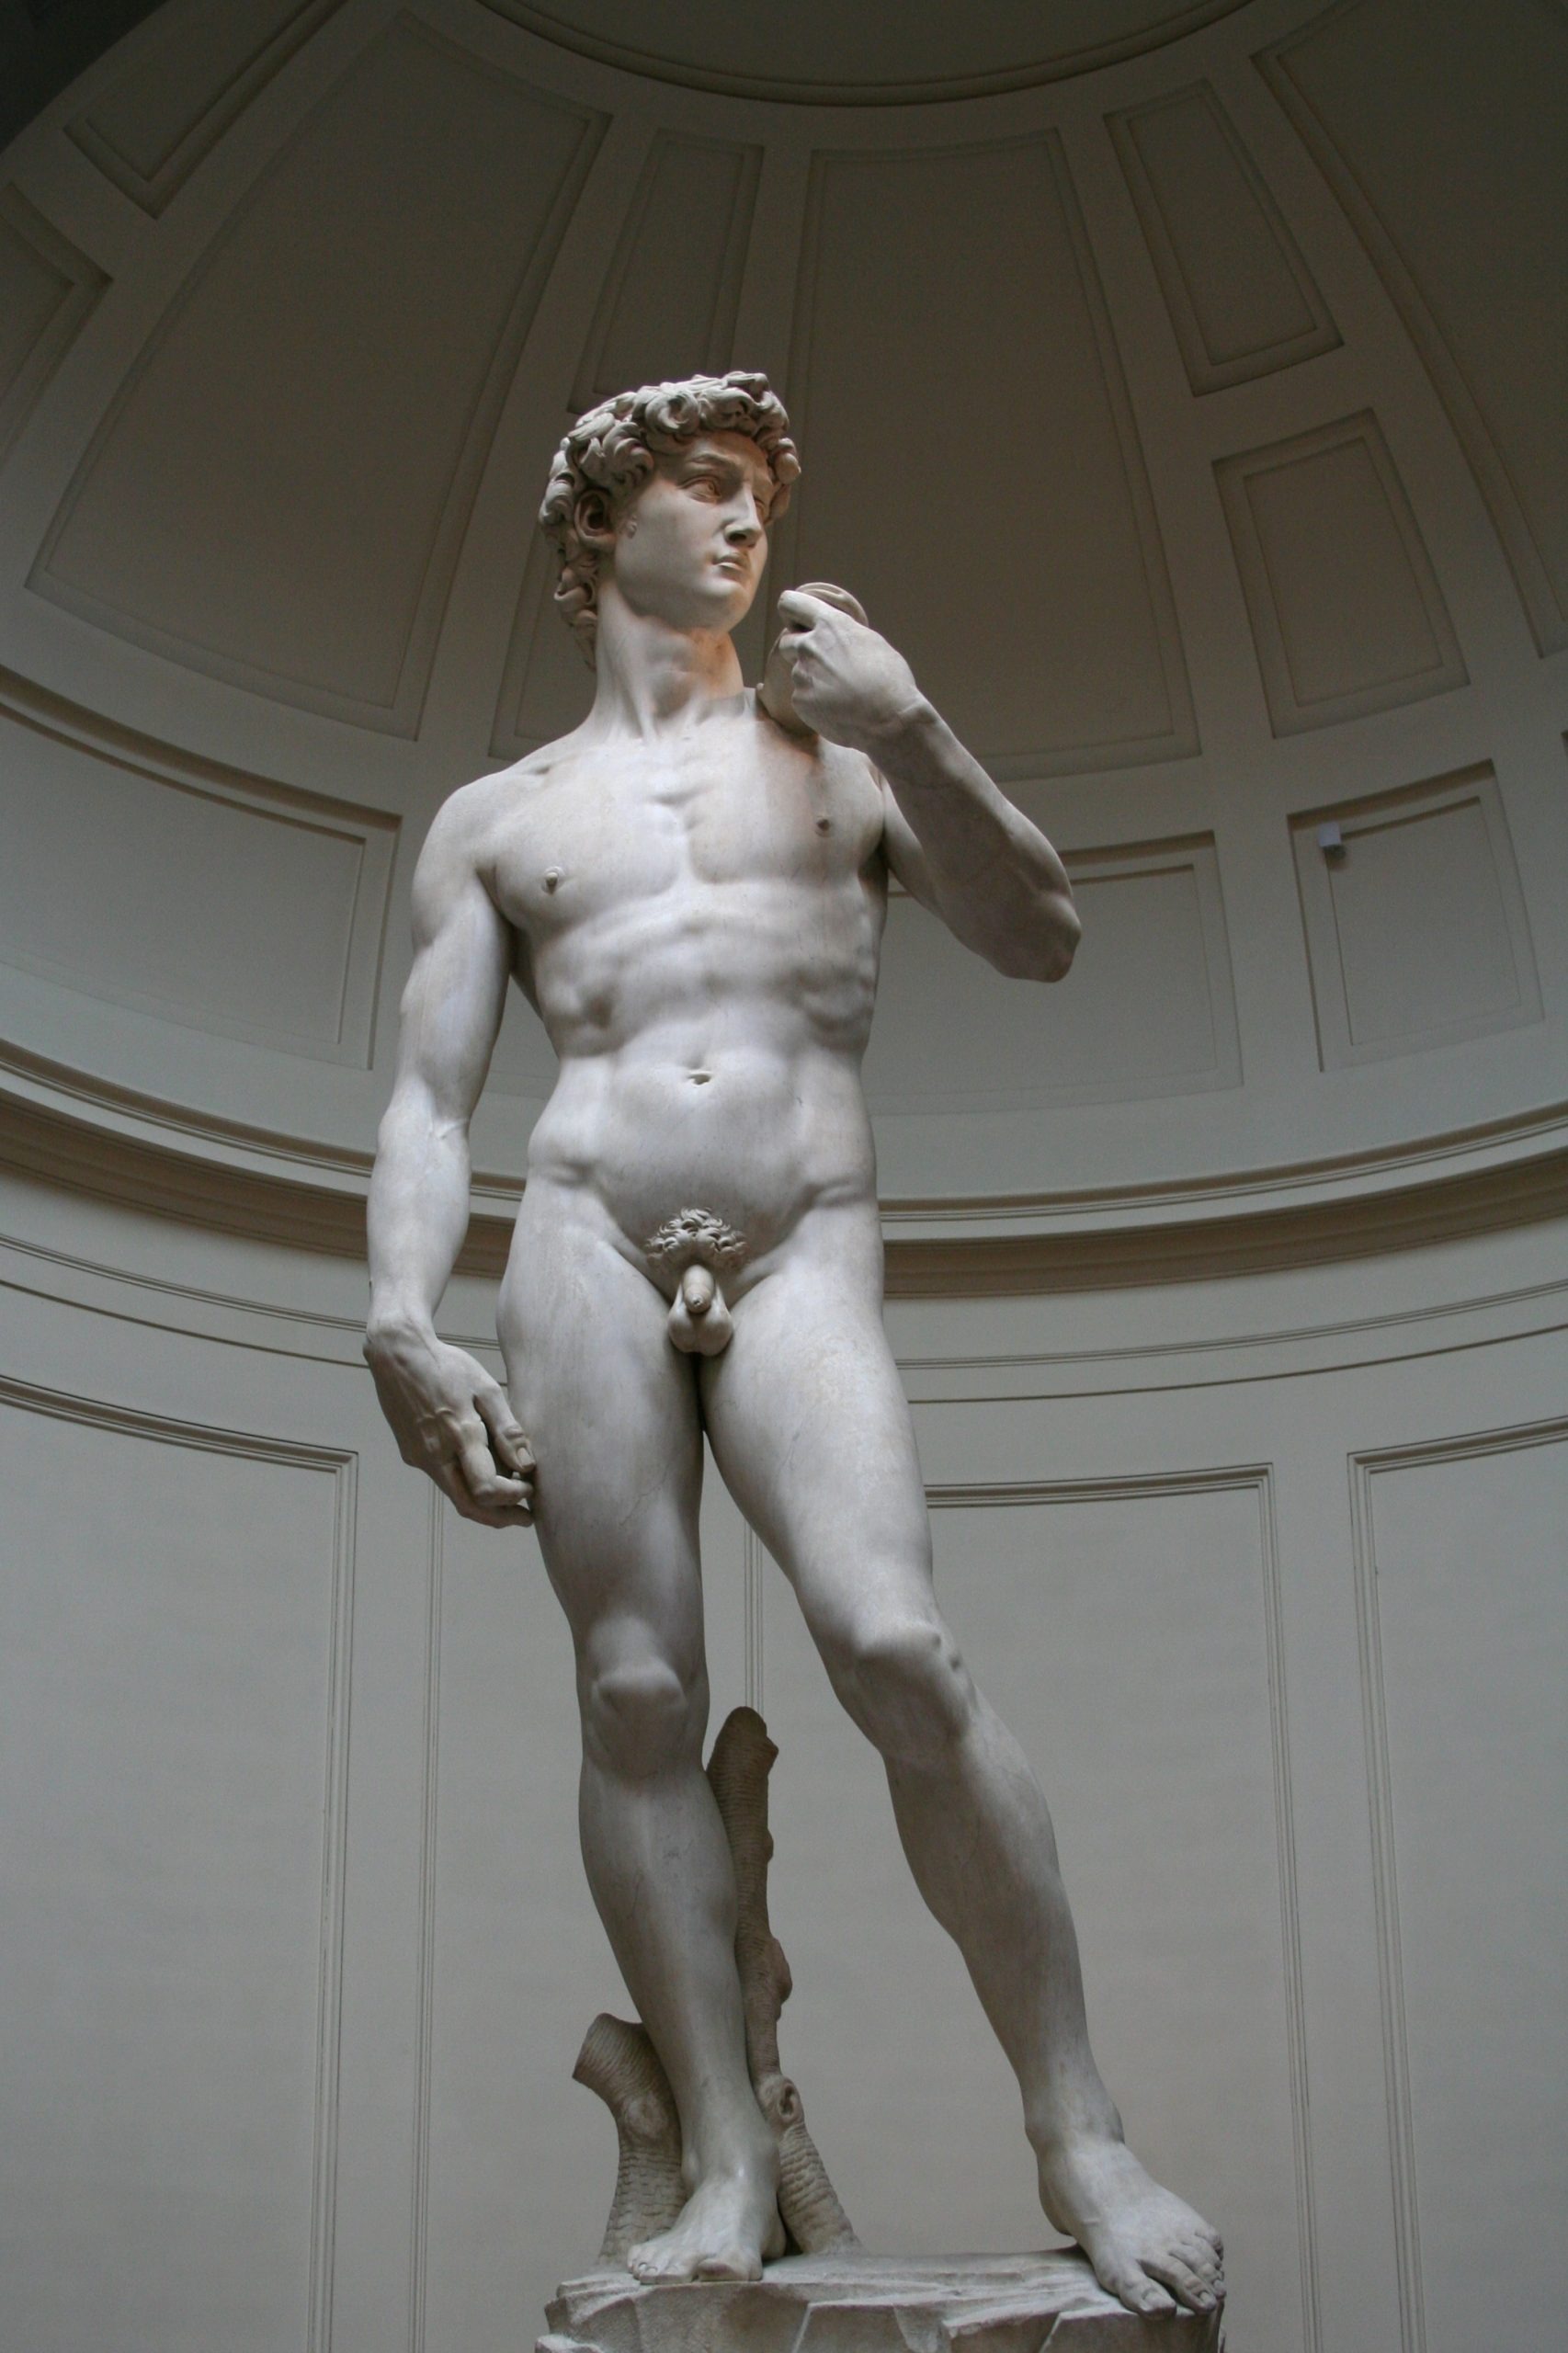 2007, Michelangelo, David, Florence, Italy